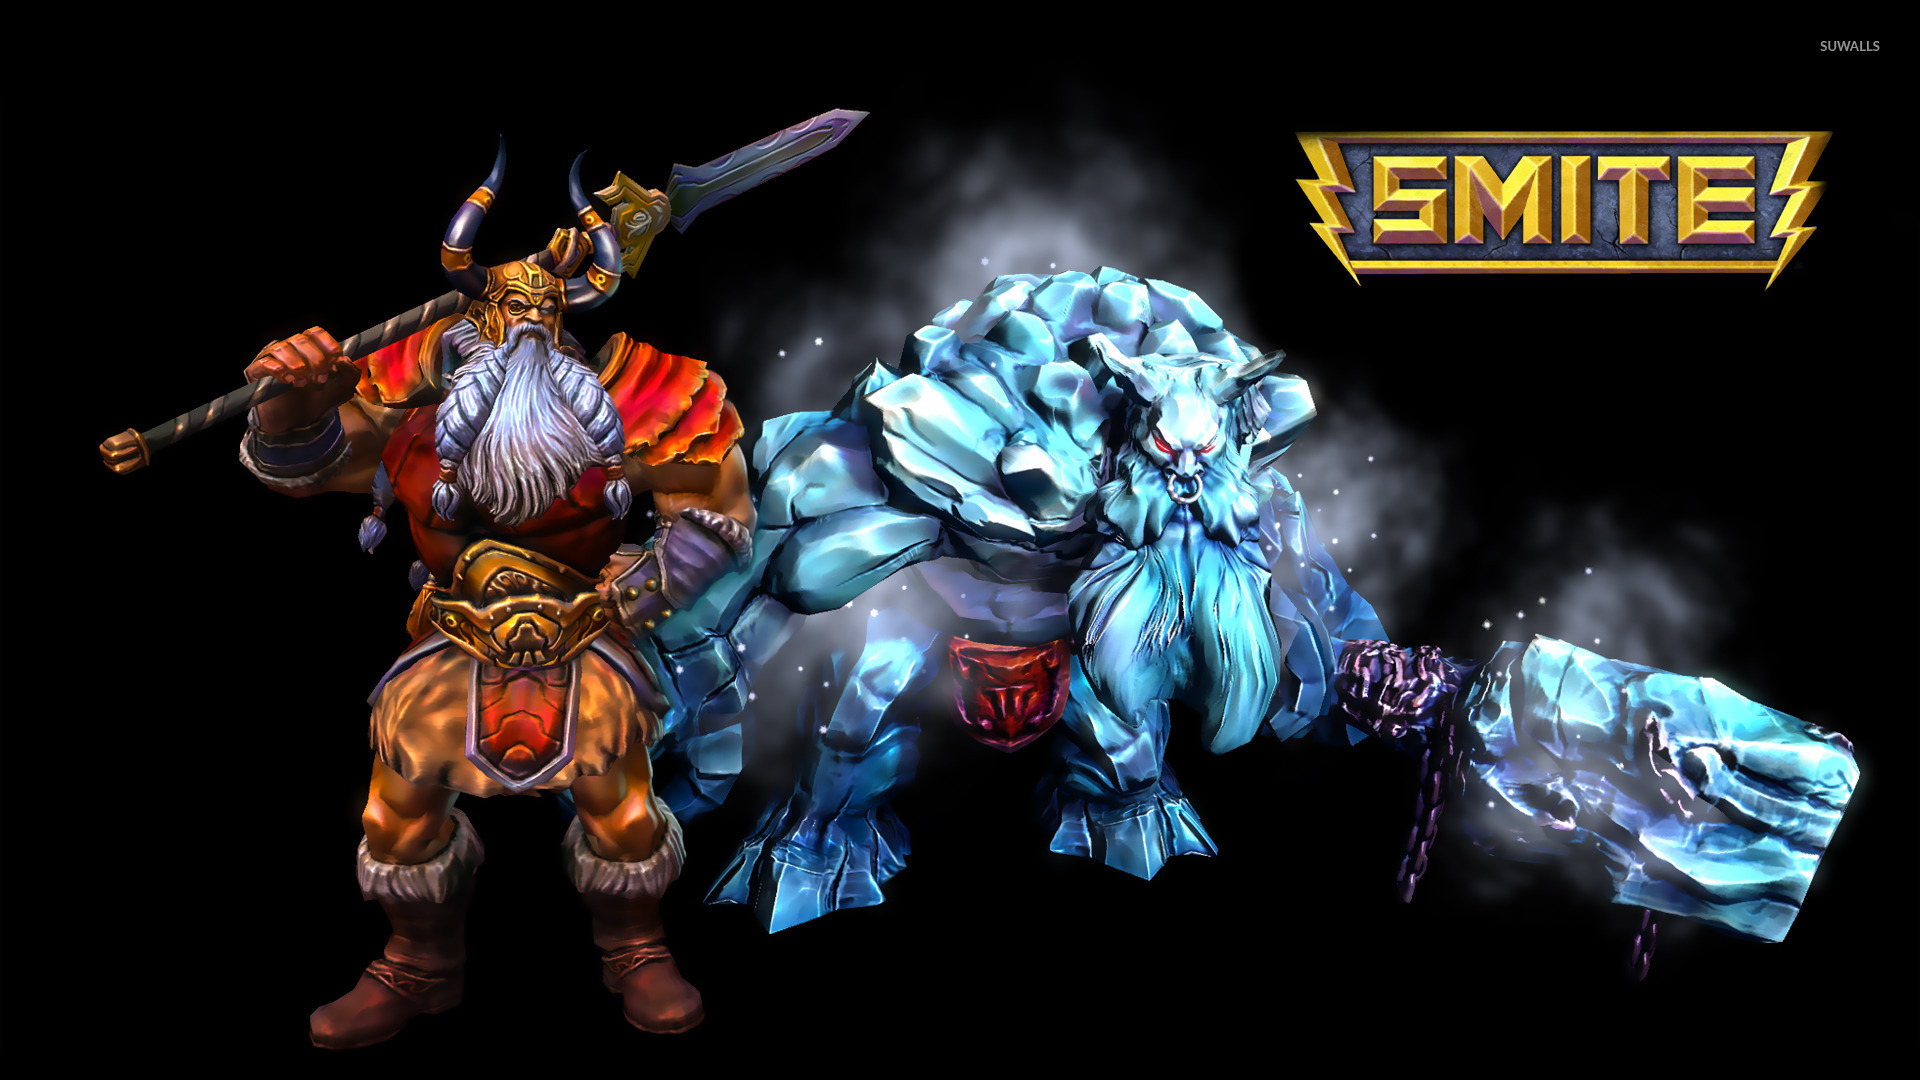 Odin and Ymir - Smite wallpaper - Game wallpapers - #22399